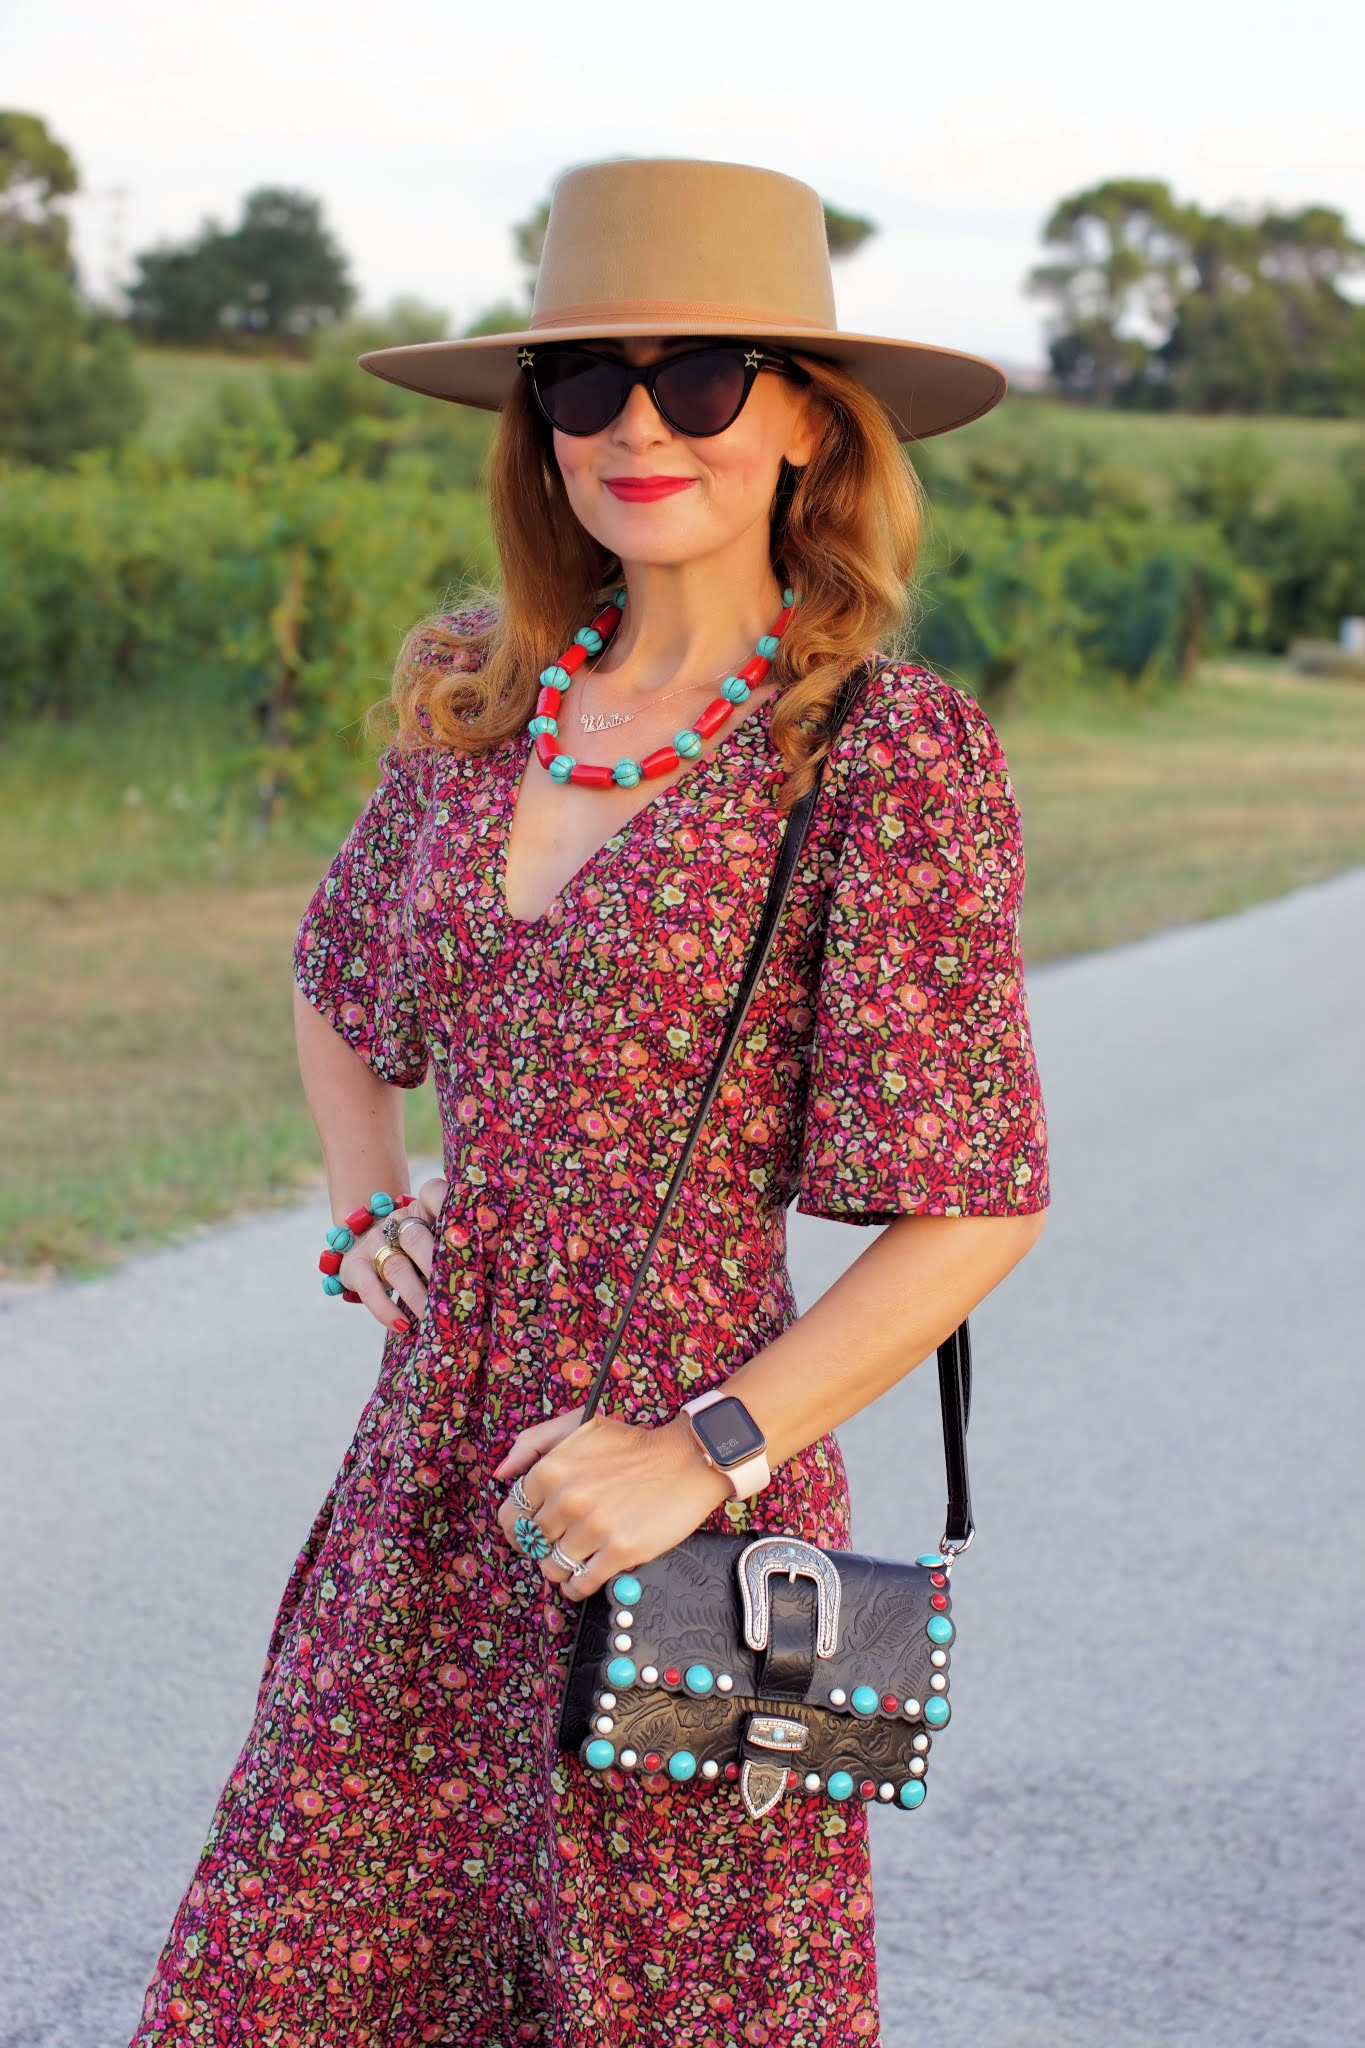 A transitional western style outfit with a ba&sh Paris dress